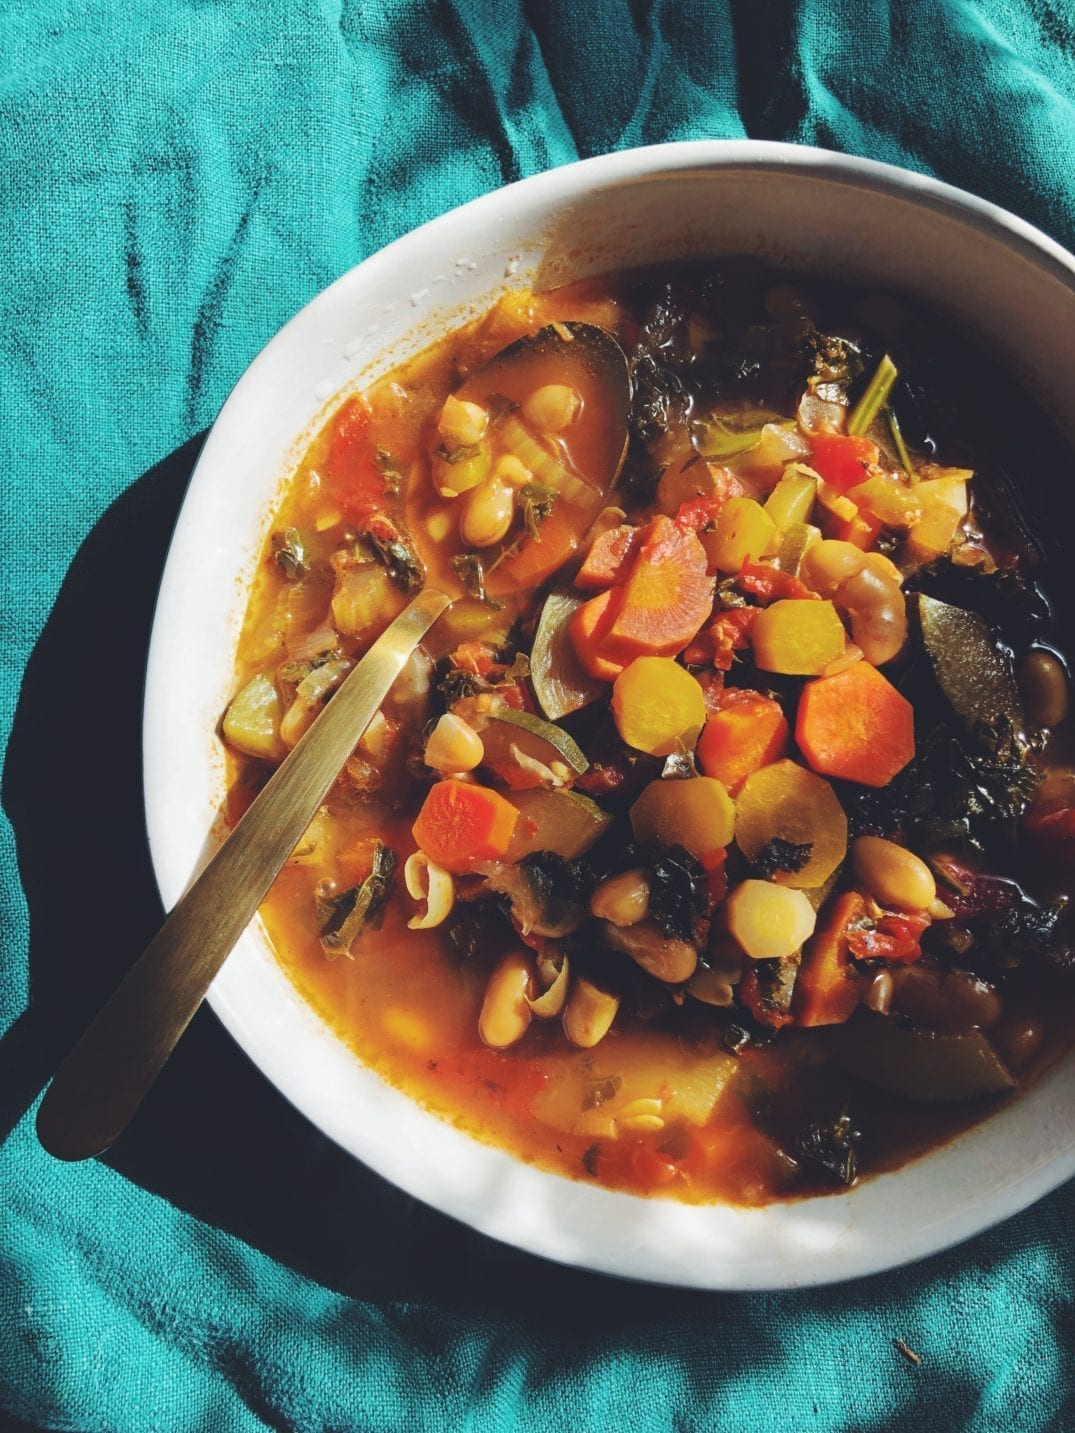 Spicy Lemon, Kale and White Bean Detox Soup